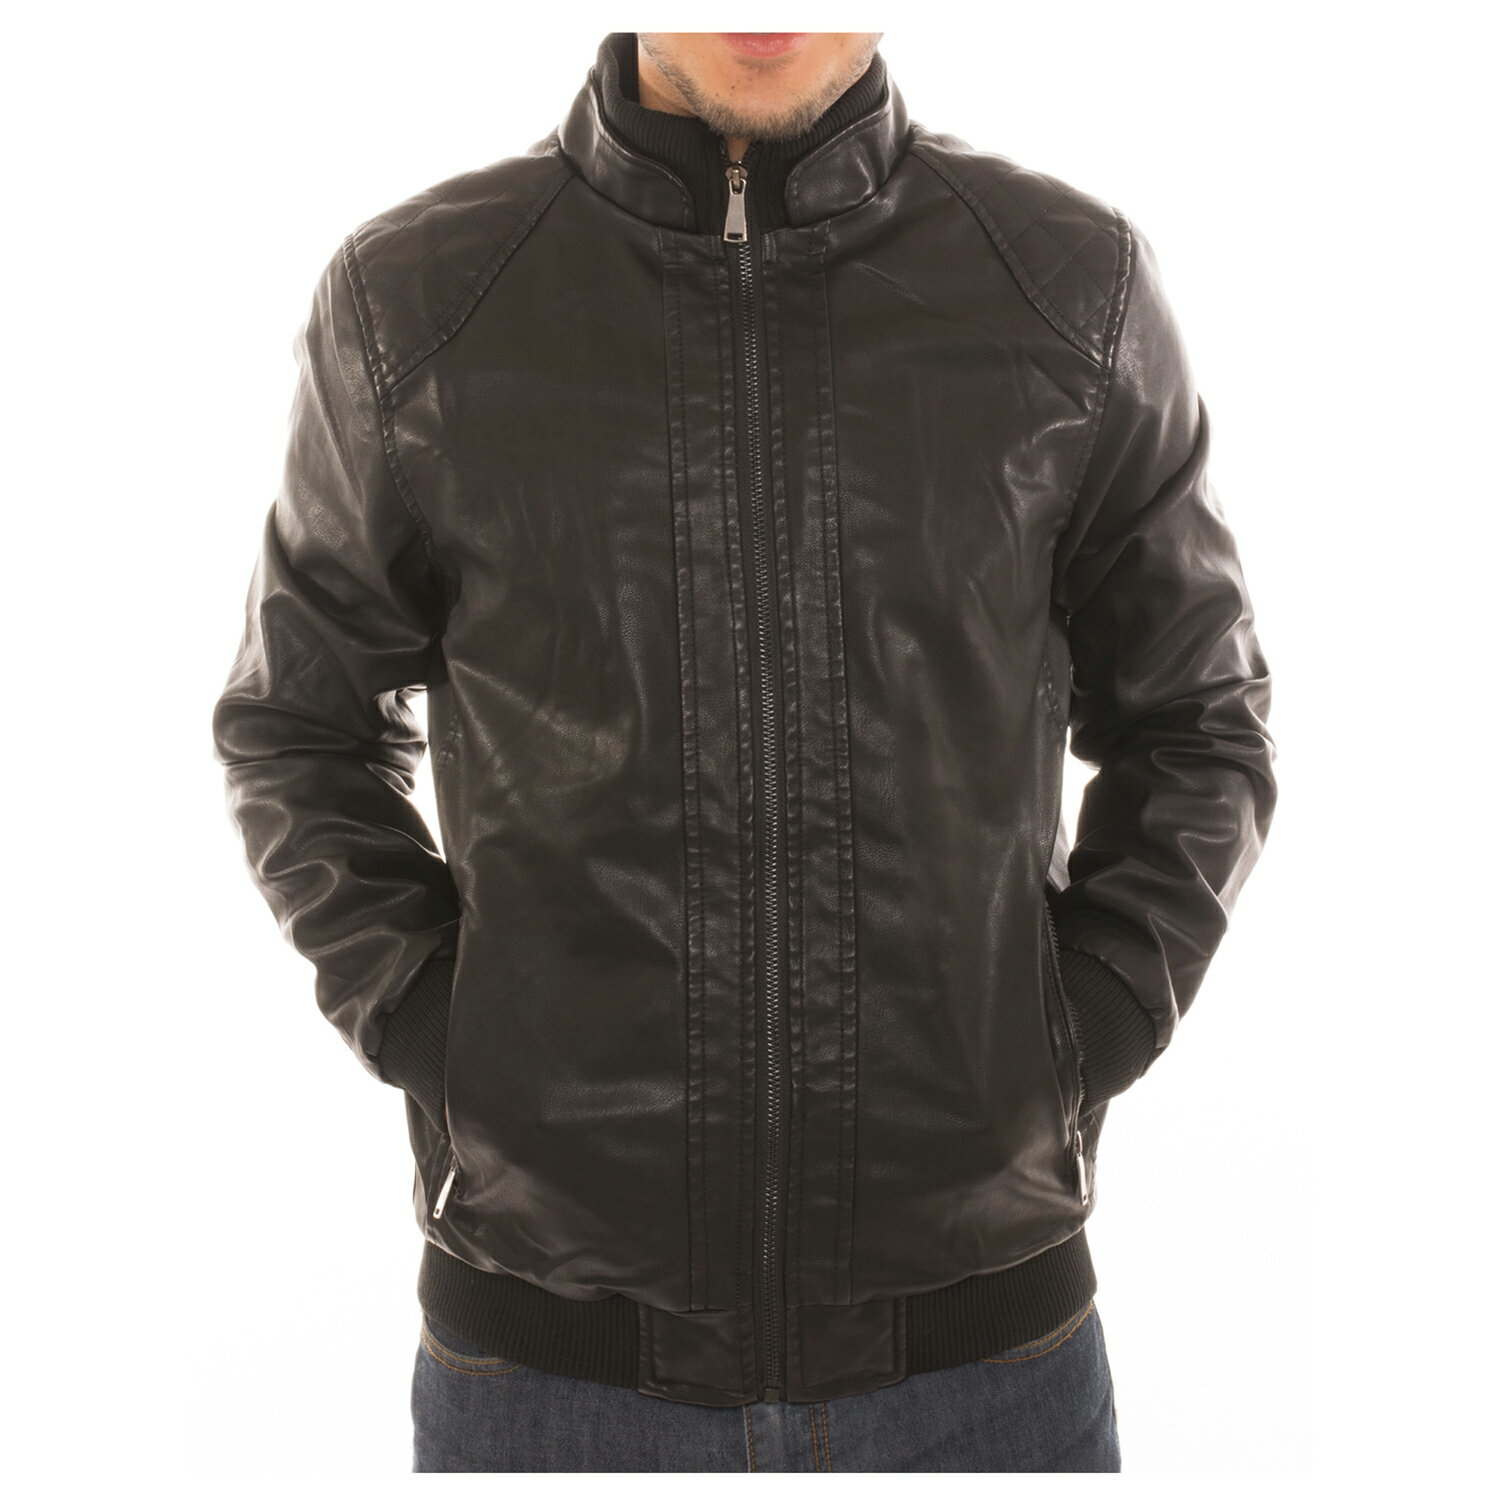 Alta Men's Motorcycle Bomber Faux Leather Fleece Lined Ribbed Jacket - Black - M 0